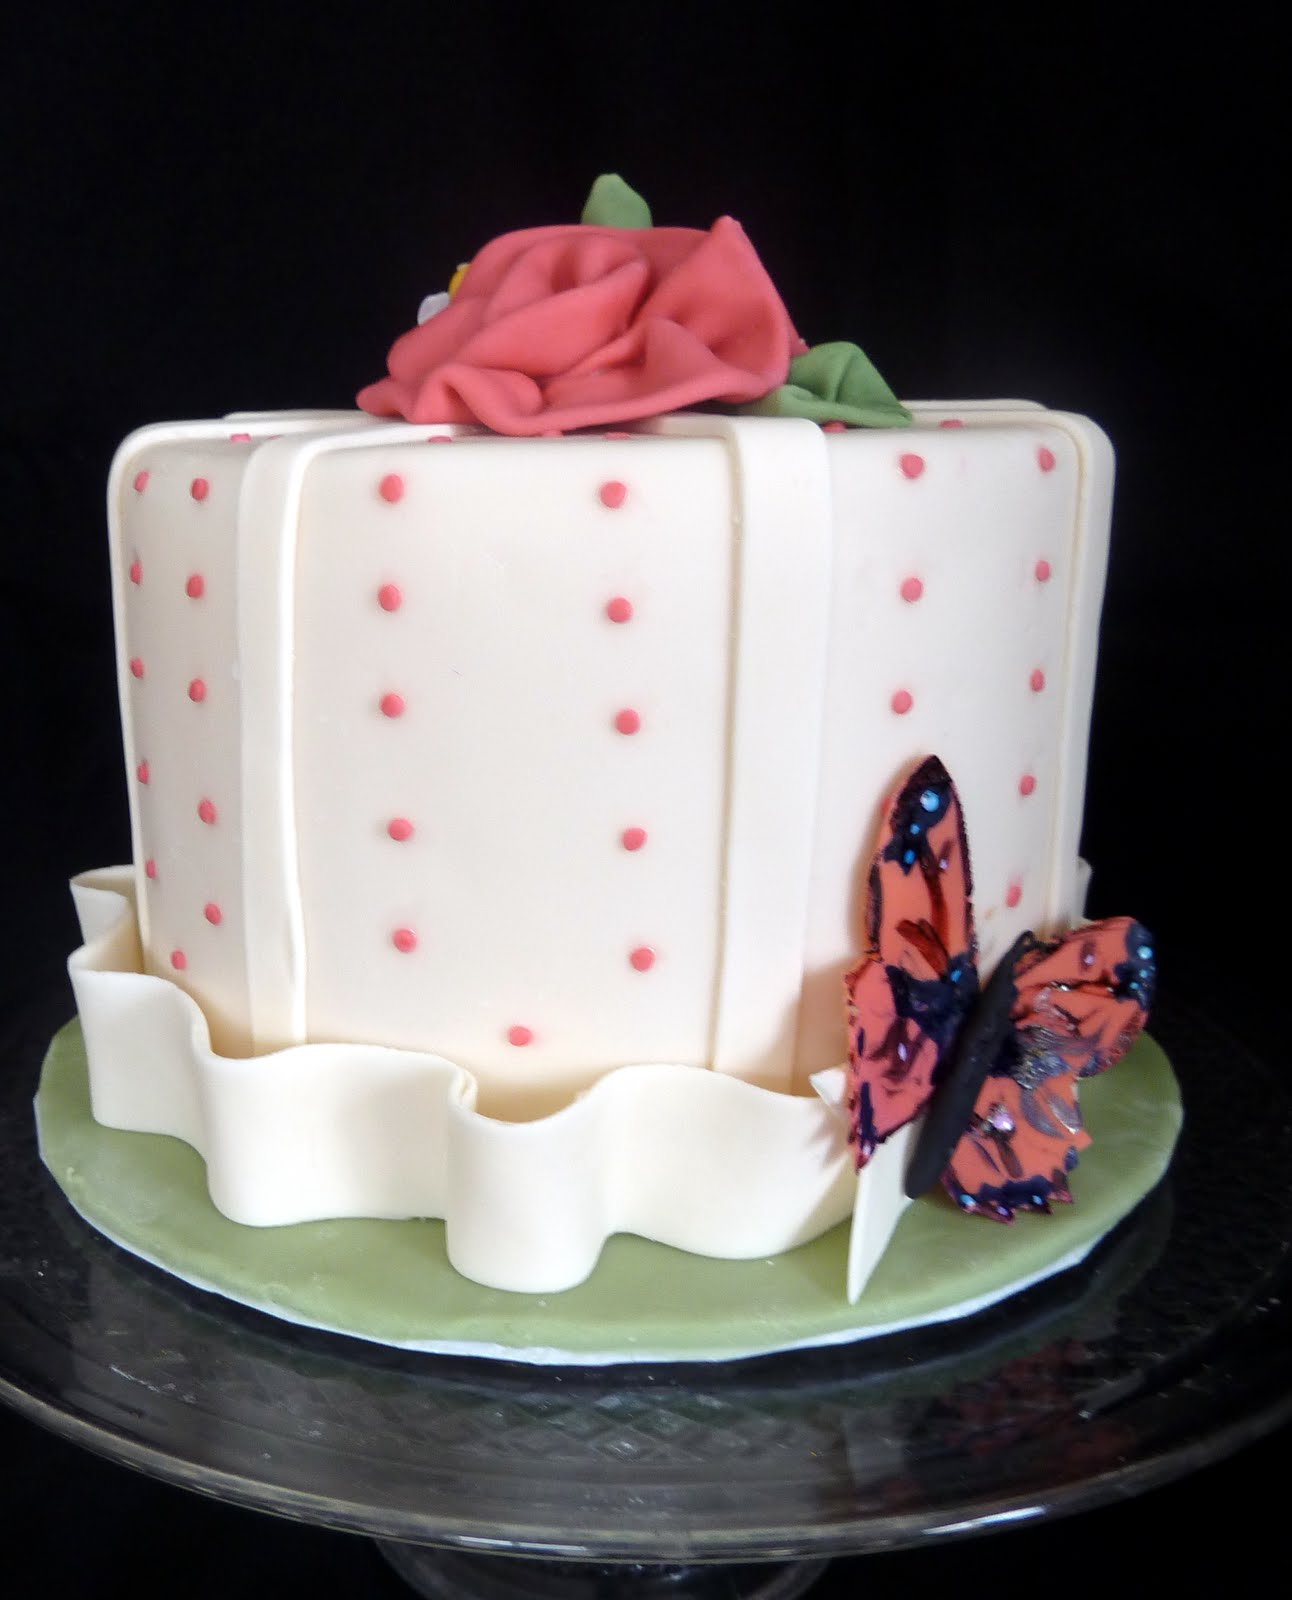 Cake Decorating Classes Free : Sweet Mimsy: Kids Cake Decorating Classes